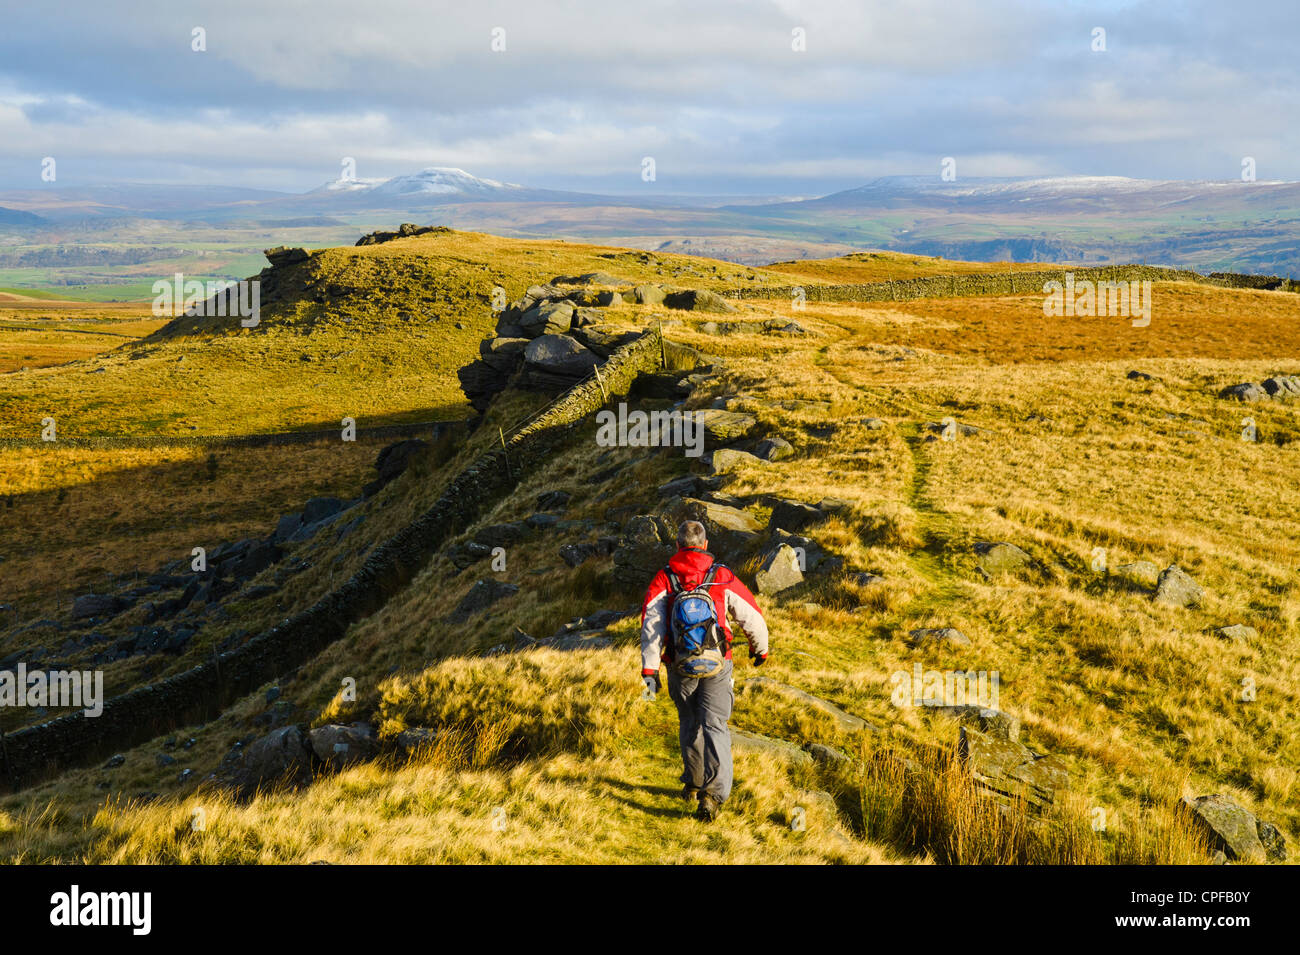 Walker on Whelp Stone Crag in the Forest of Bowland Lancashire England; Pen-y-Ghent in Yorkshire on the horizon - Stock Image